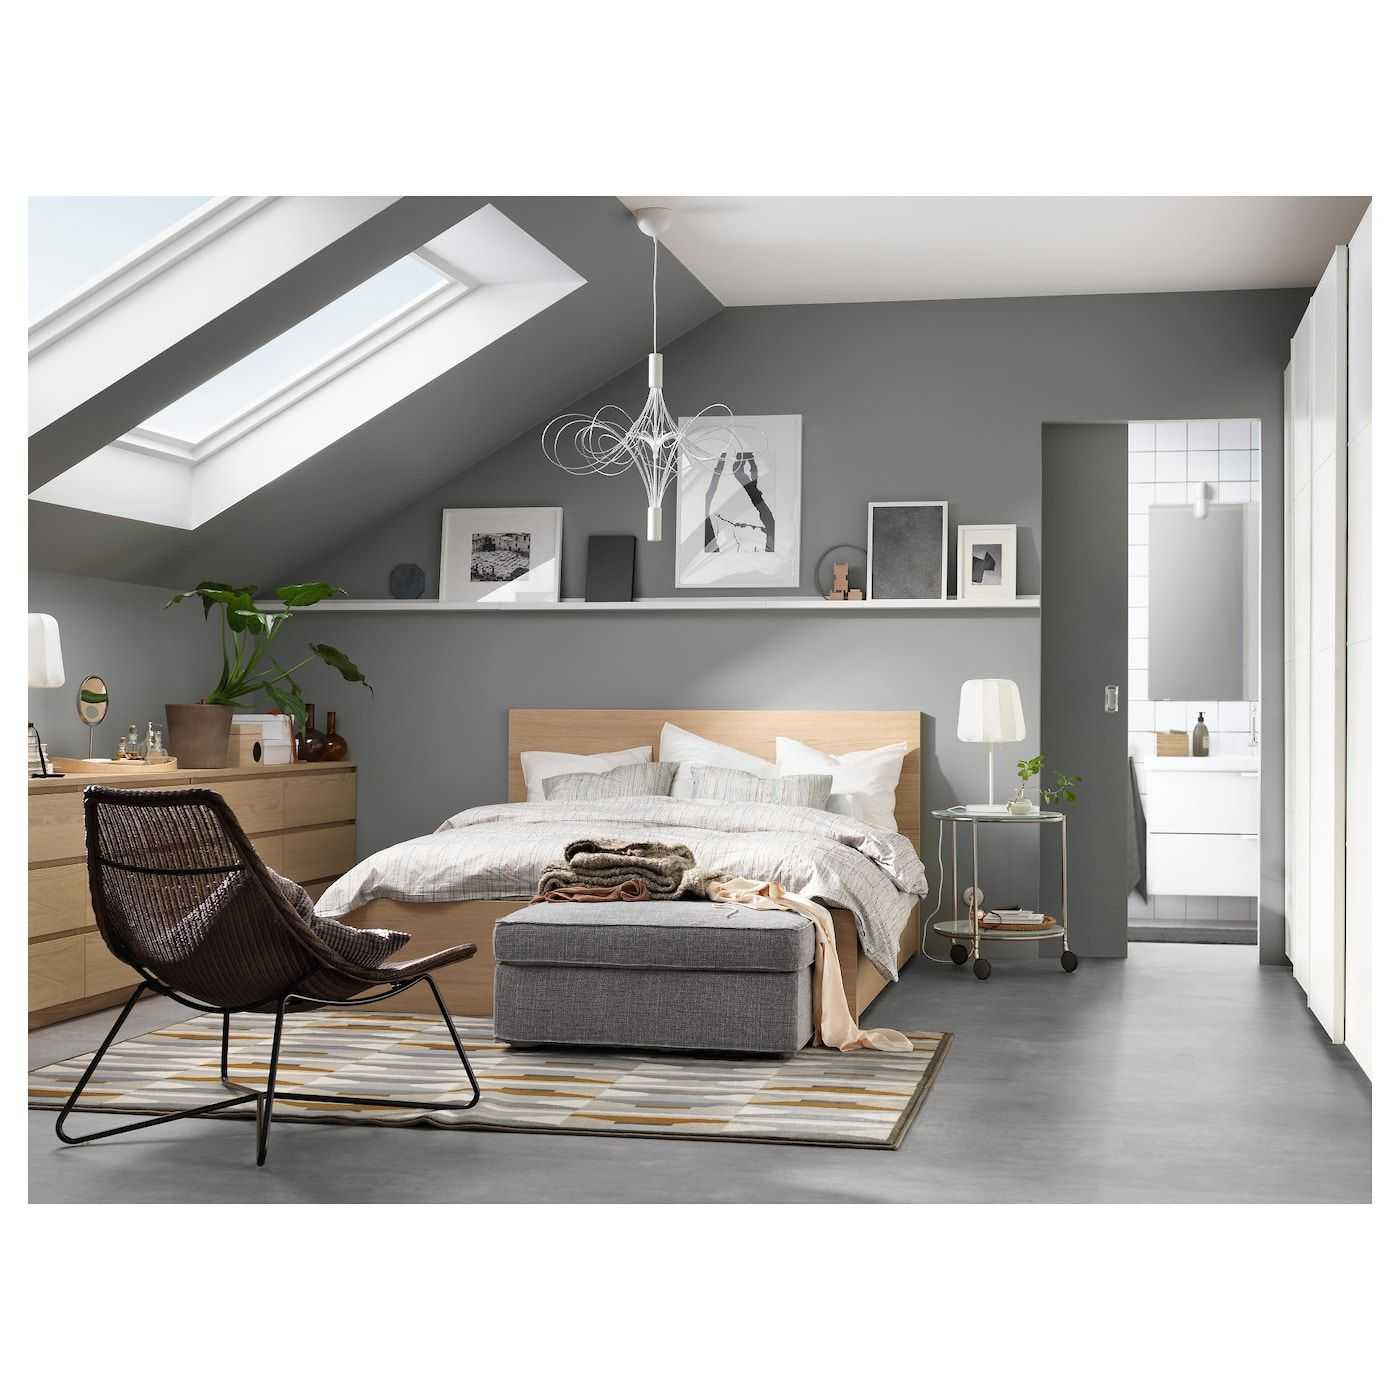 Malm High Bed Frame 2 Storage Boxes White Stained Oak Veneer Lonset Ikea Bed Boxes Dekomalm Frame2 High Ikea In 2020 Bettgestell Verstellbare Betten Malm